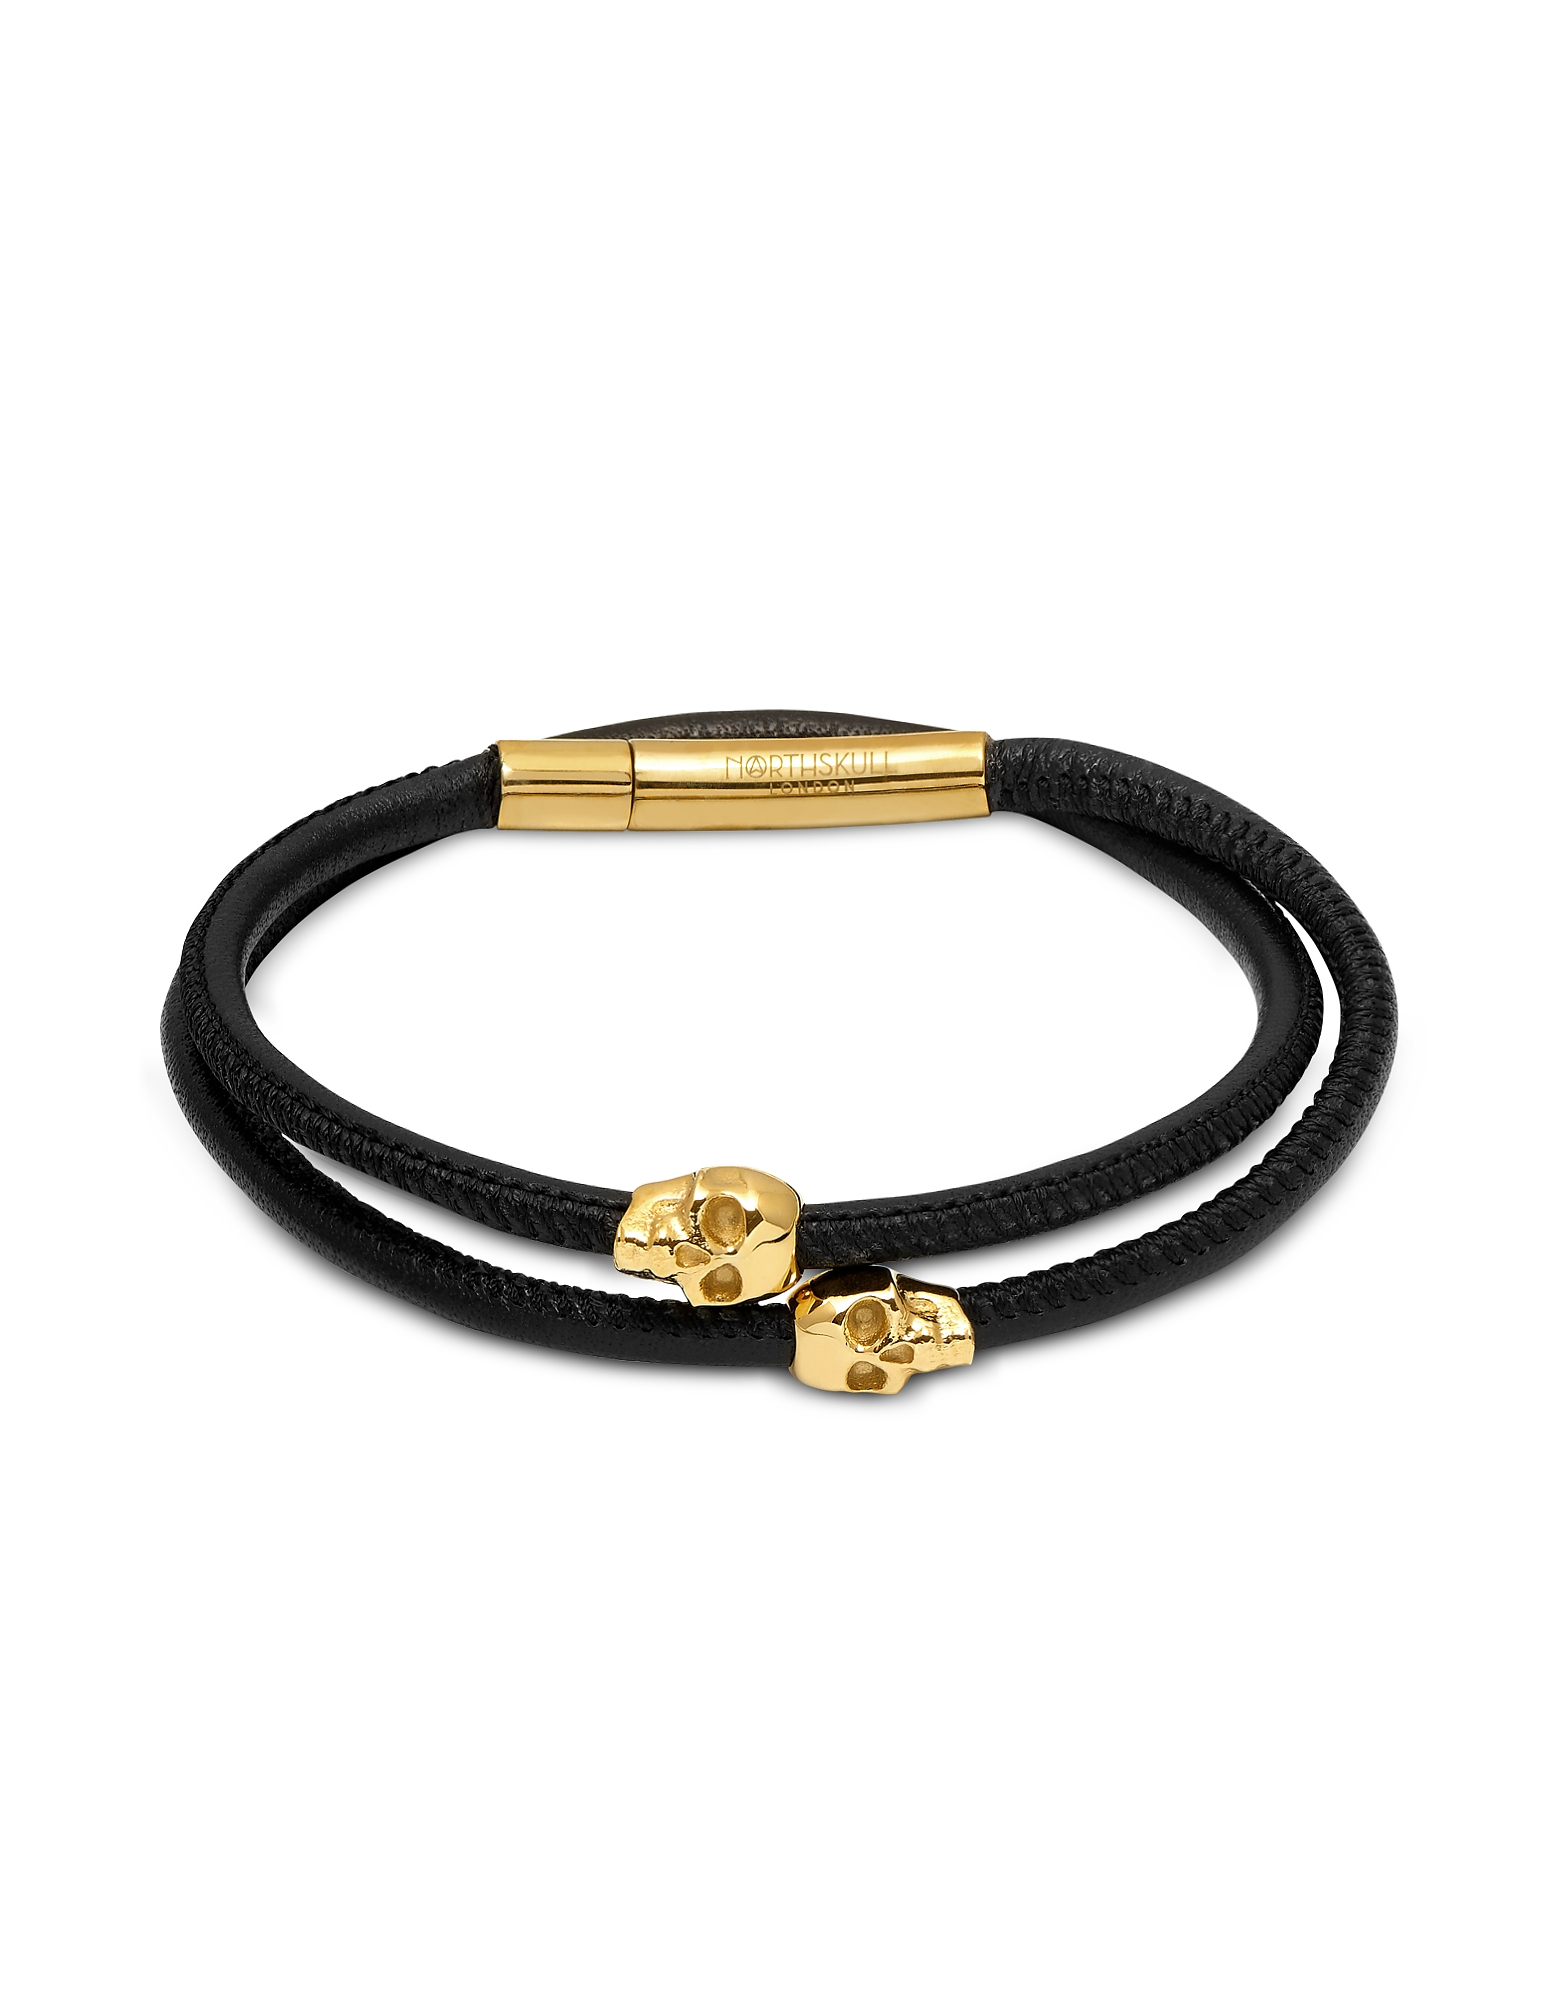 Skull Wrap Around Bracelet Black Leather & Yellow Gold